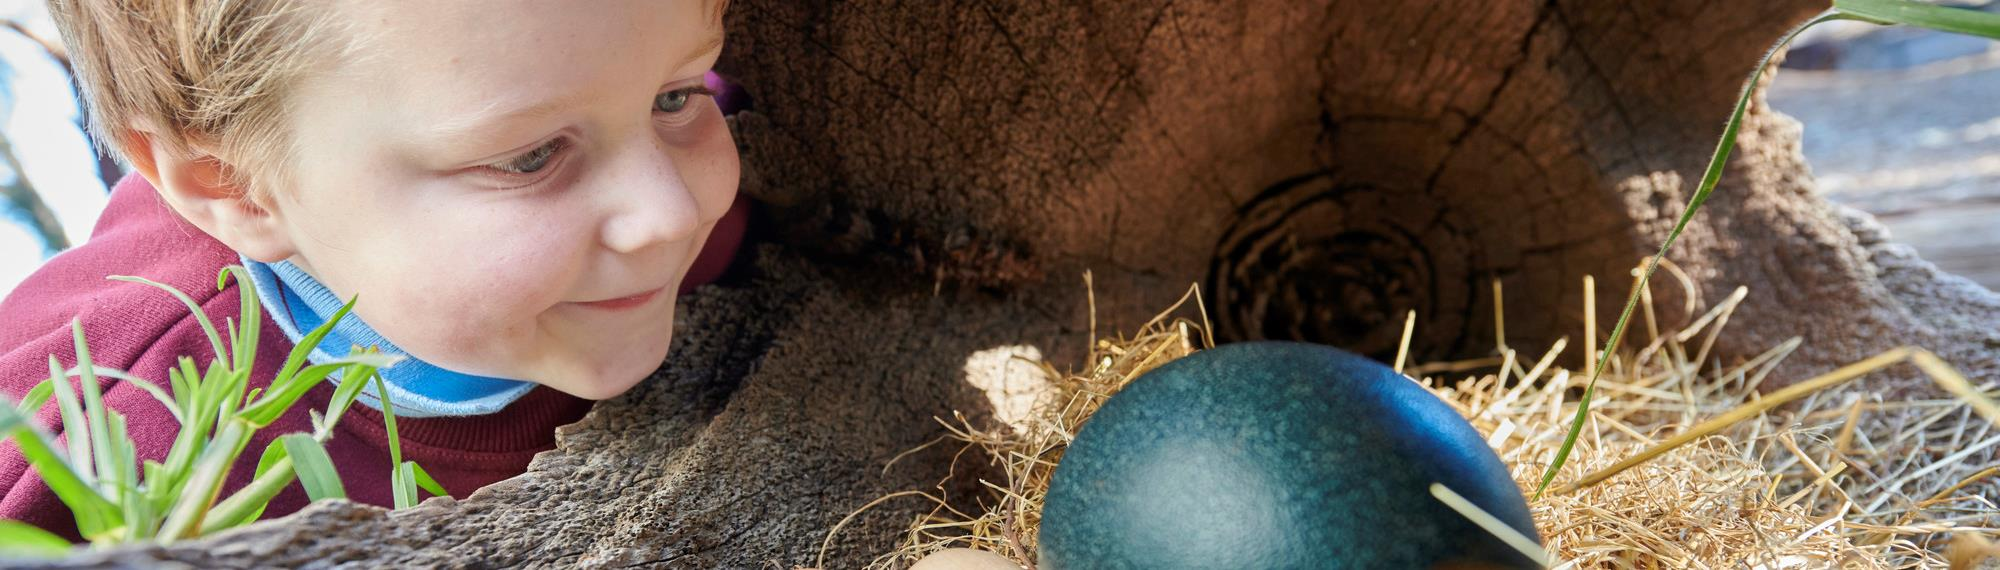 Small child looking into a hollow log with a nest. Inside the nest are three small pale eggs and a large green emu egg.